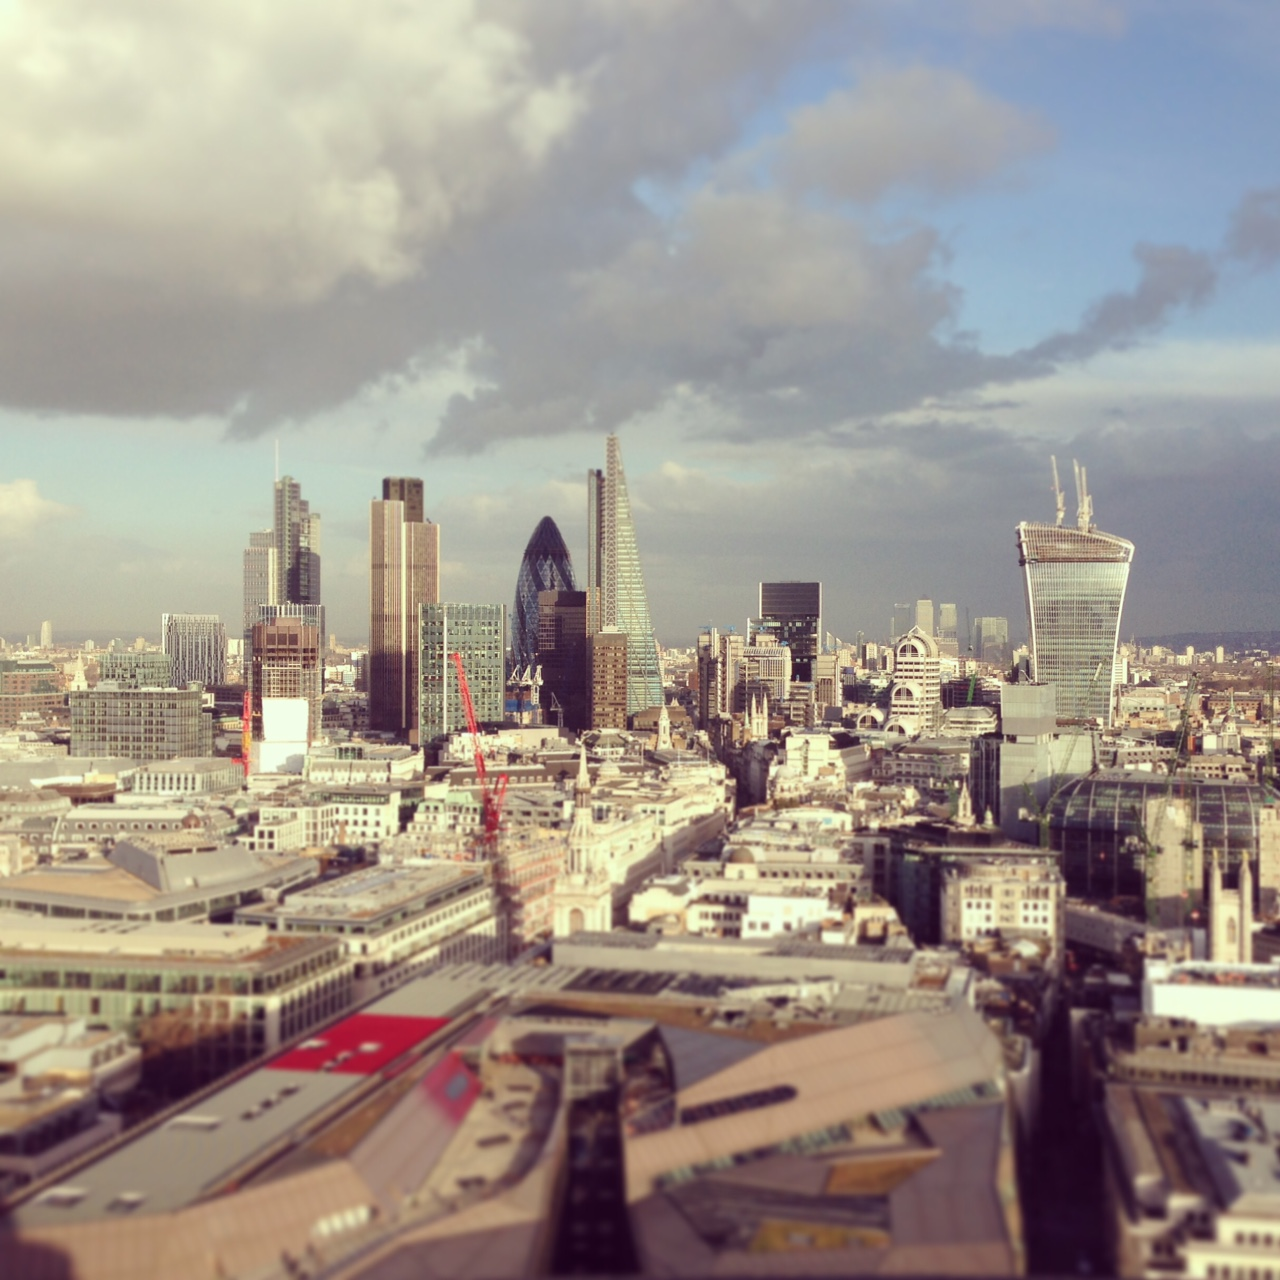 View of the City of London from atop St. Paul's Cathedral